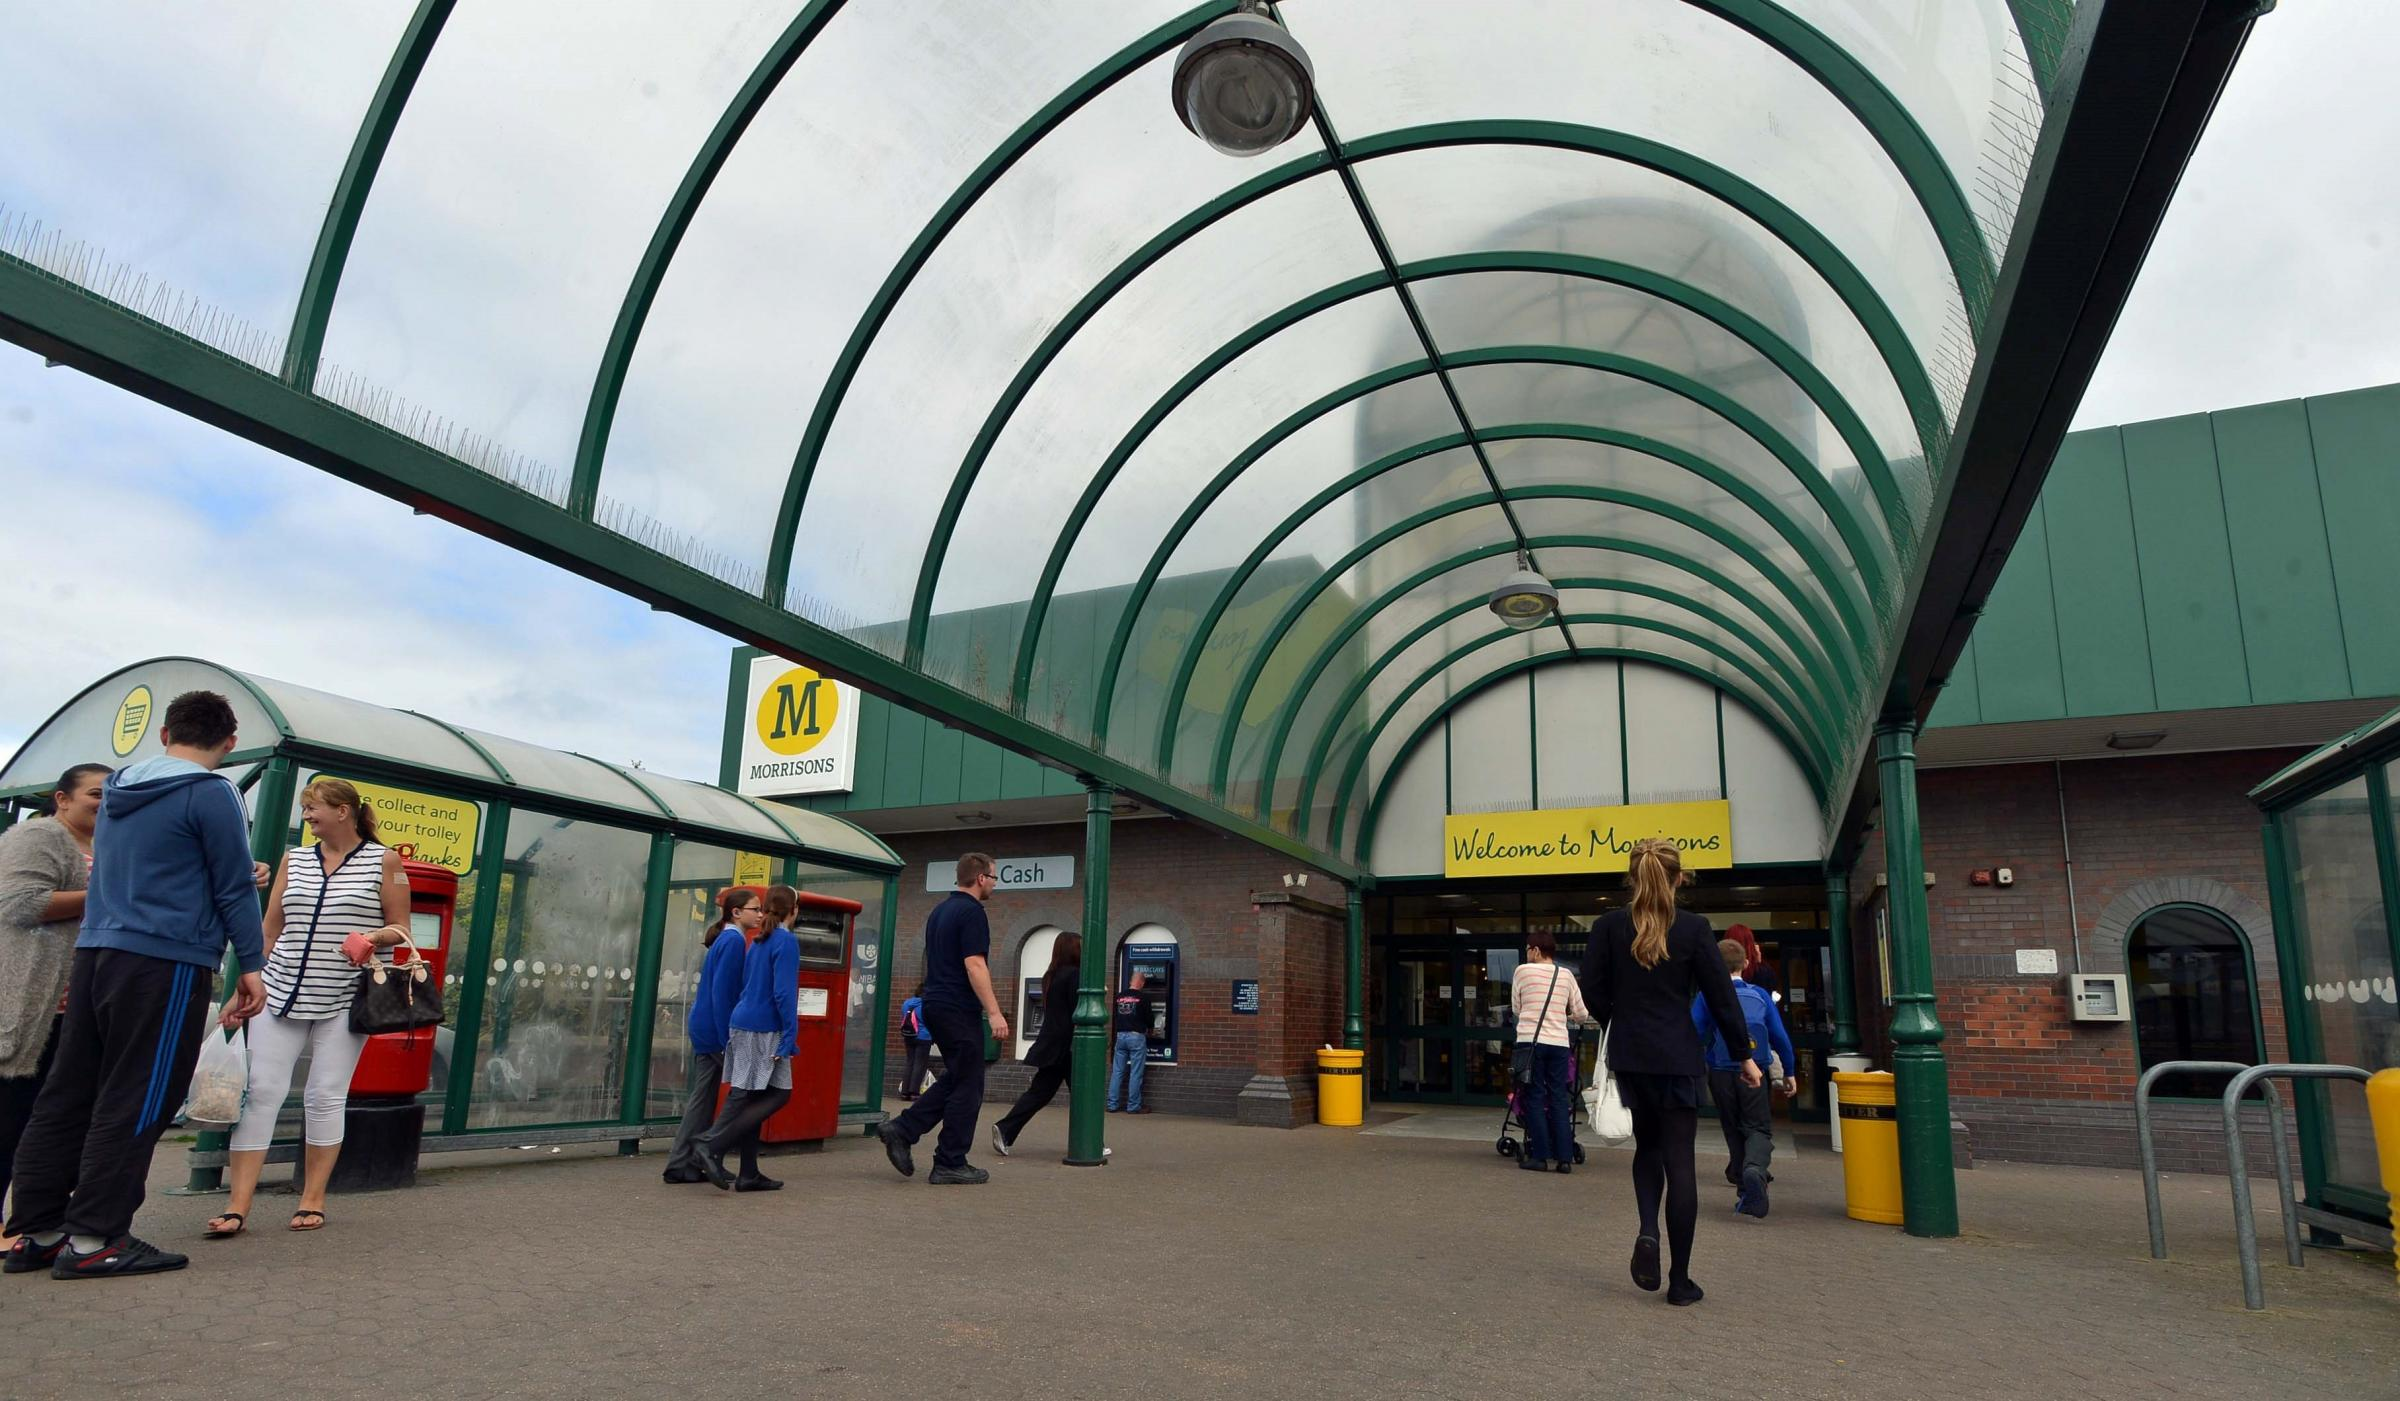 Morrisons has stopped accepting £2 coins at some of its self-service checkouts.